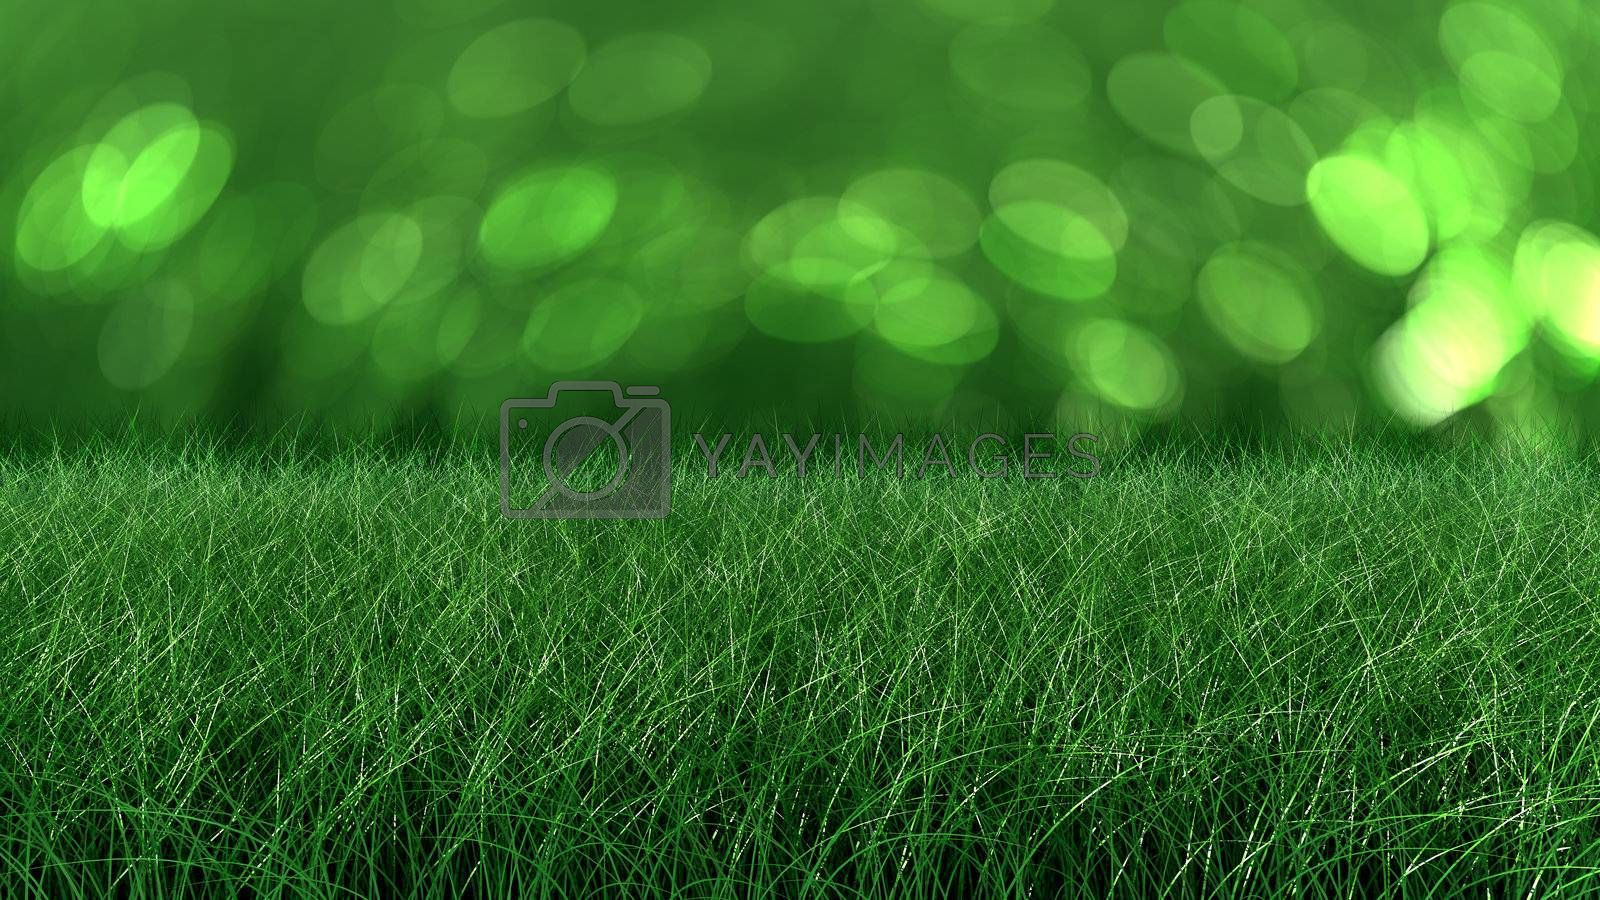 flowers and grass seamless texture for backgrounds